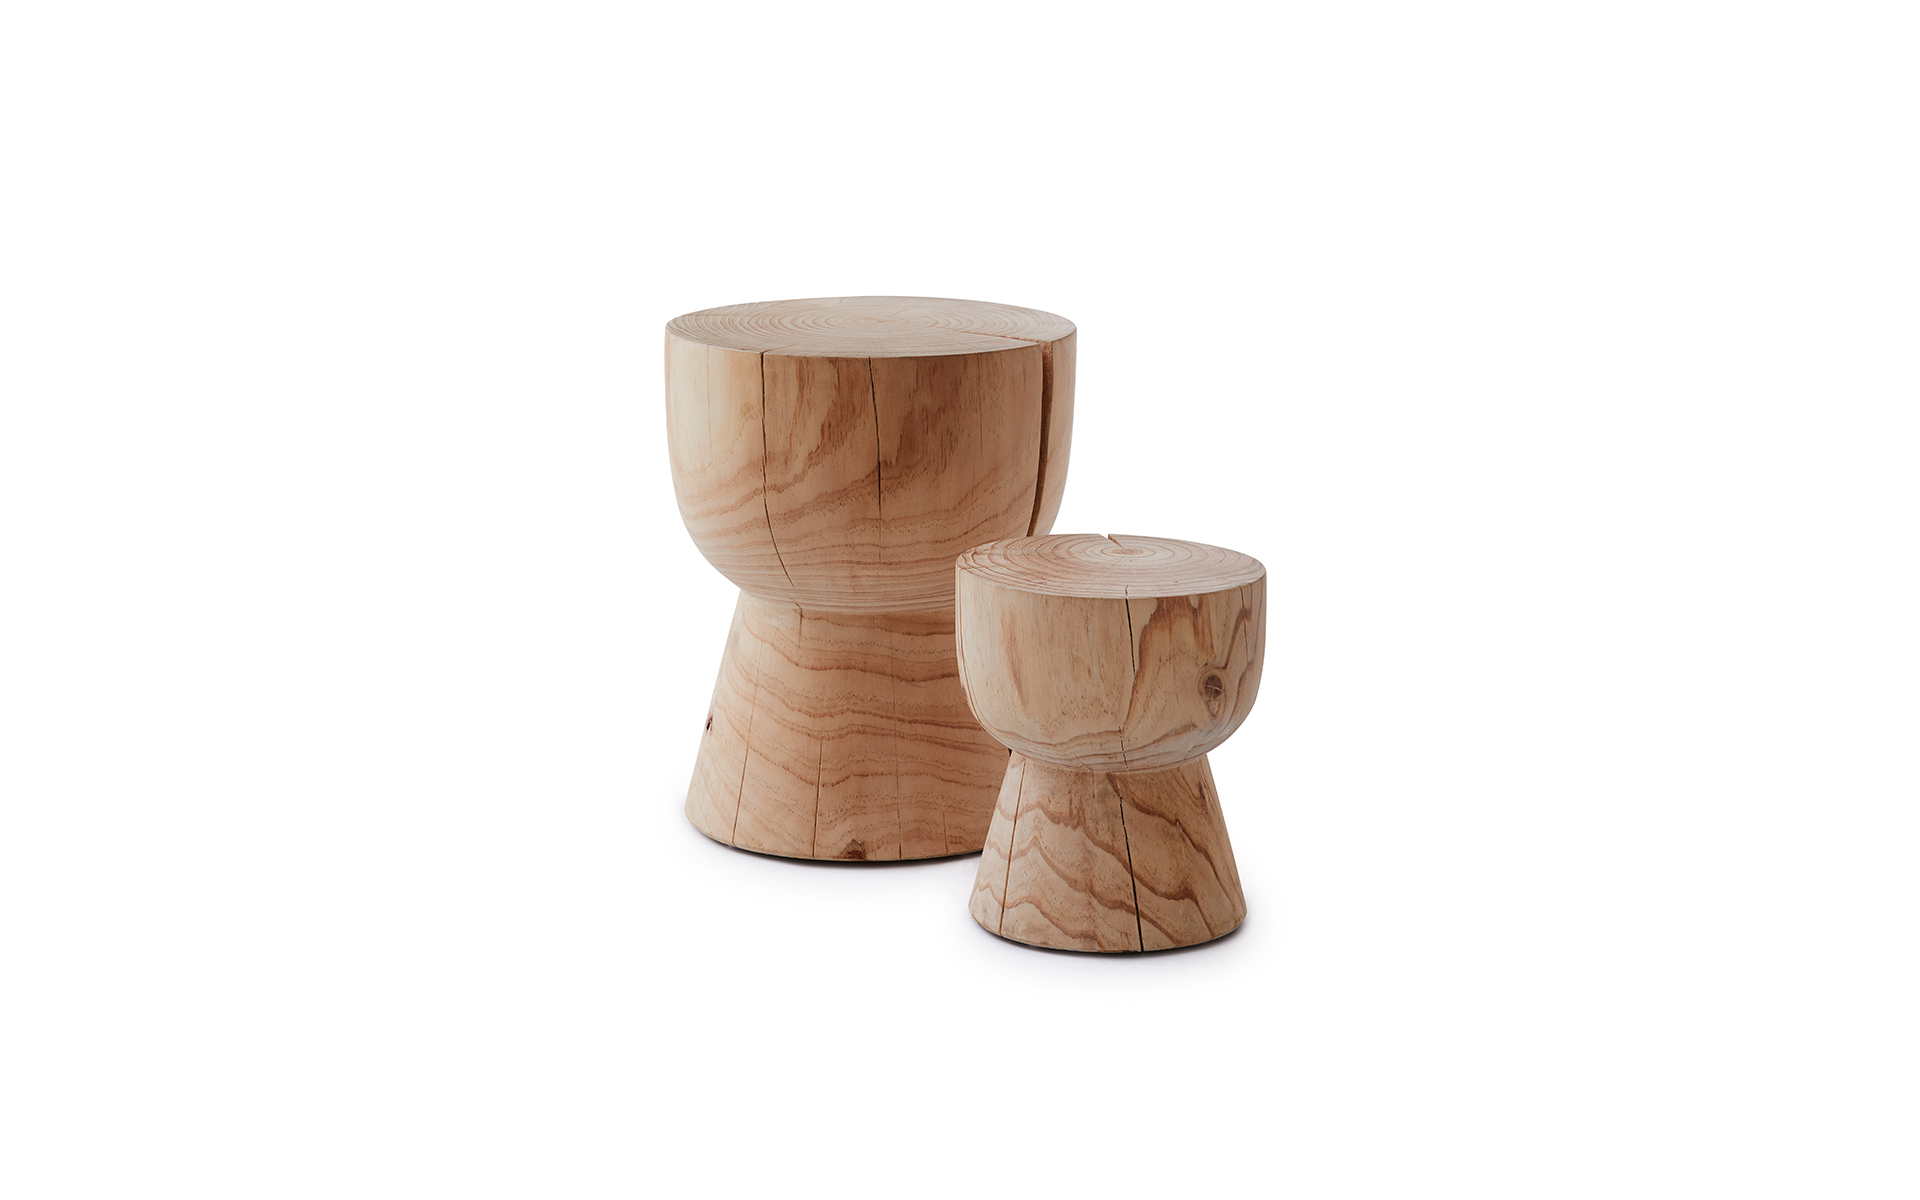 Astounding Mini Eggcup Mark Tuckey Andrewgaddart Wooden Chair Designs For Living Room Andrewgaddartcom